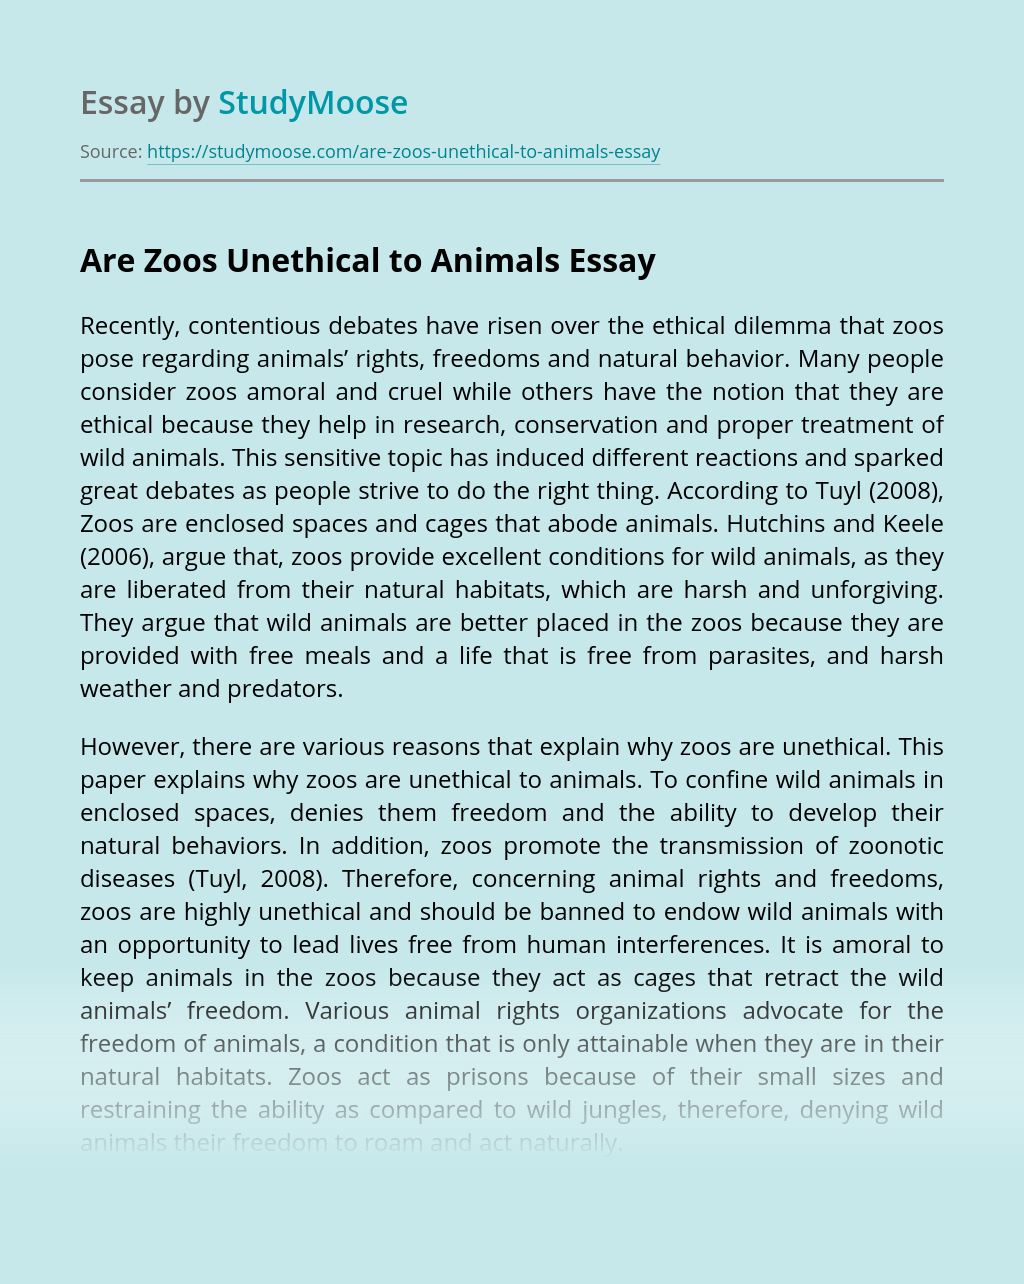 Are Zoos Unethical to Animals